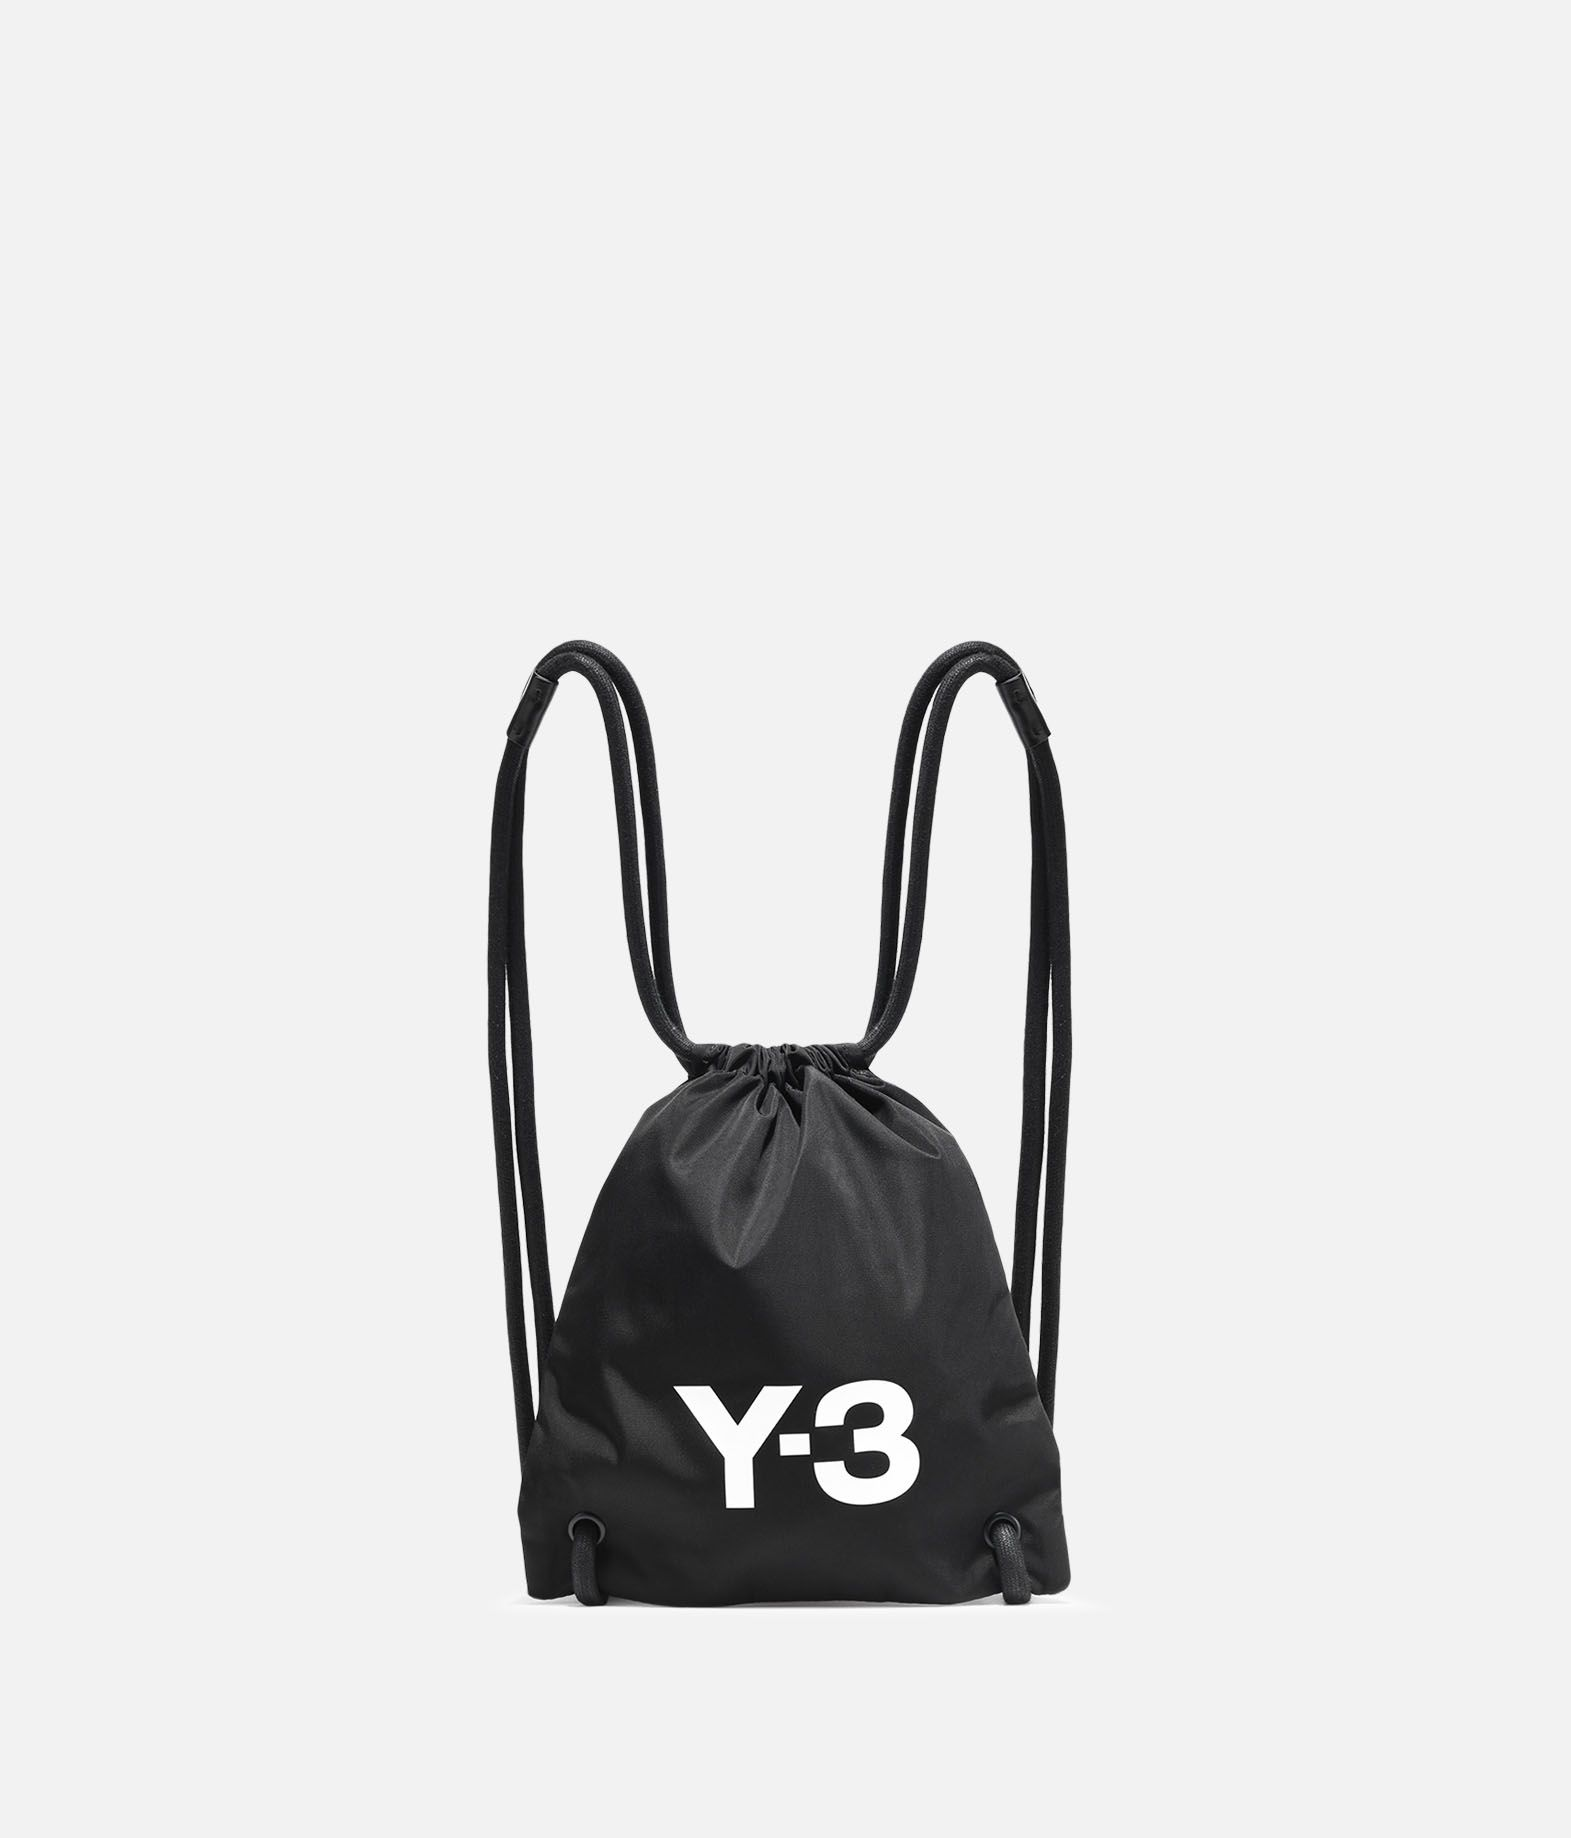 39e8107a29e2 ... Y-3 Y-3 Mini Gym Bag Gym bag E f ...